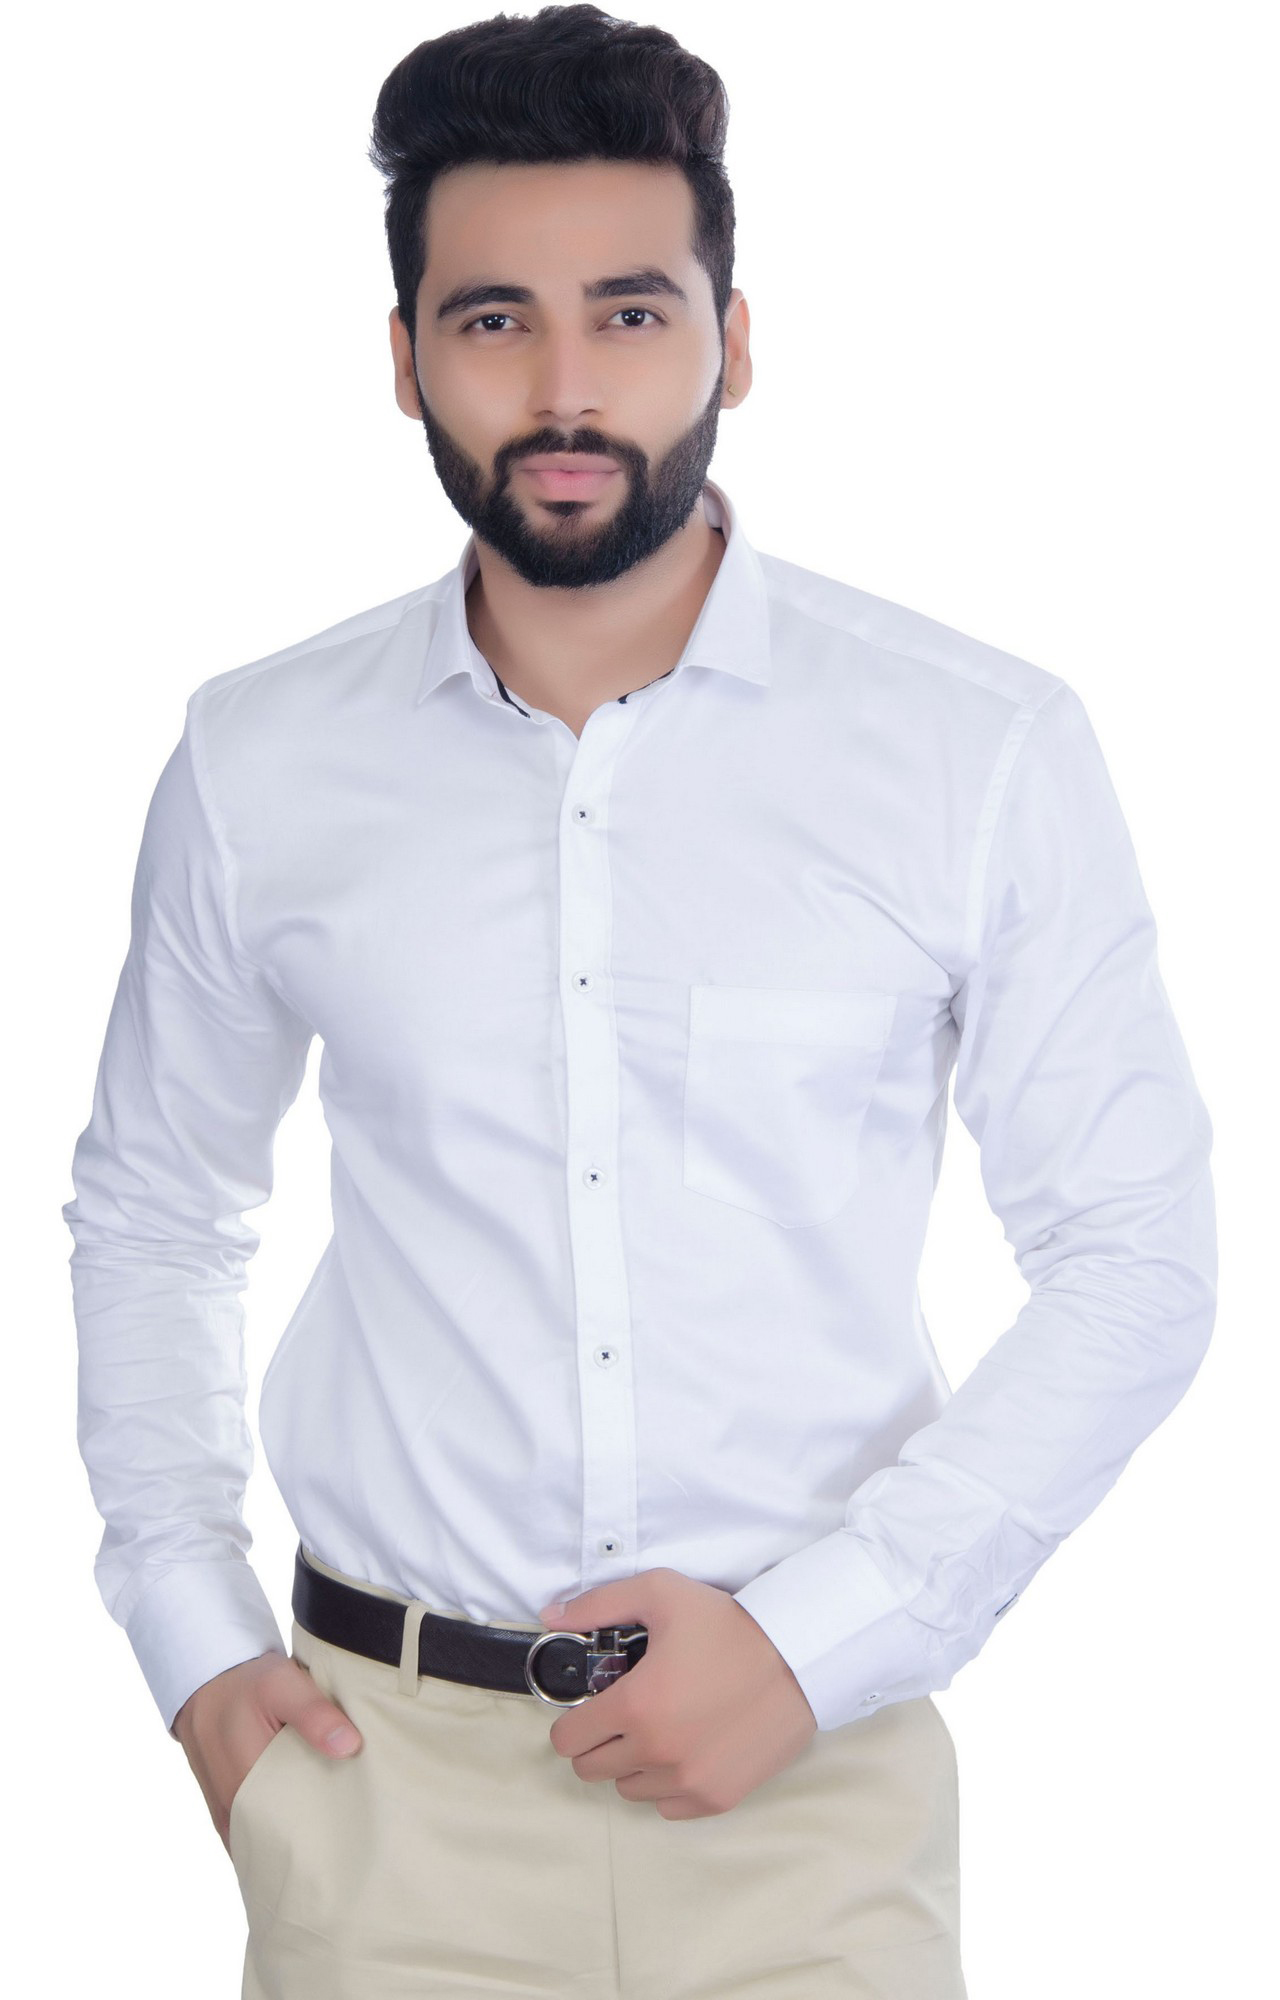 5th Anfold | FIFTH ANFOLD Solid Pure Cotton Formal Full Long Sleev White Spread Collar Mens Shirt